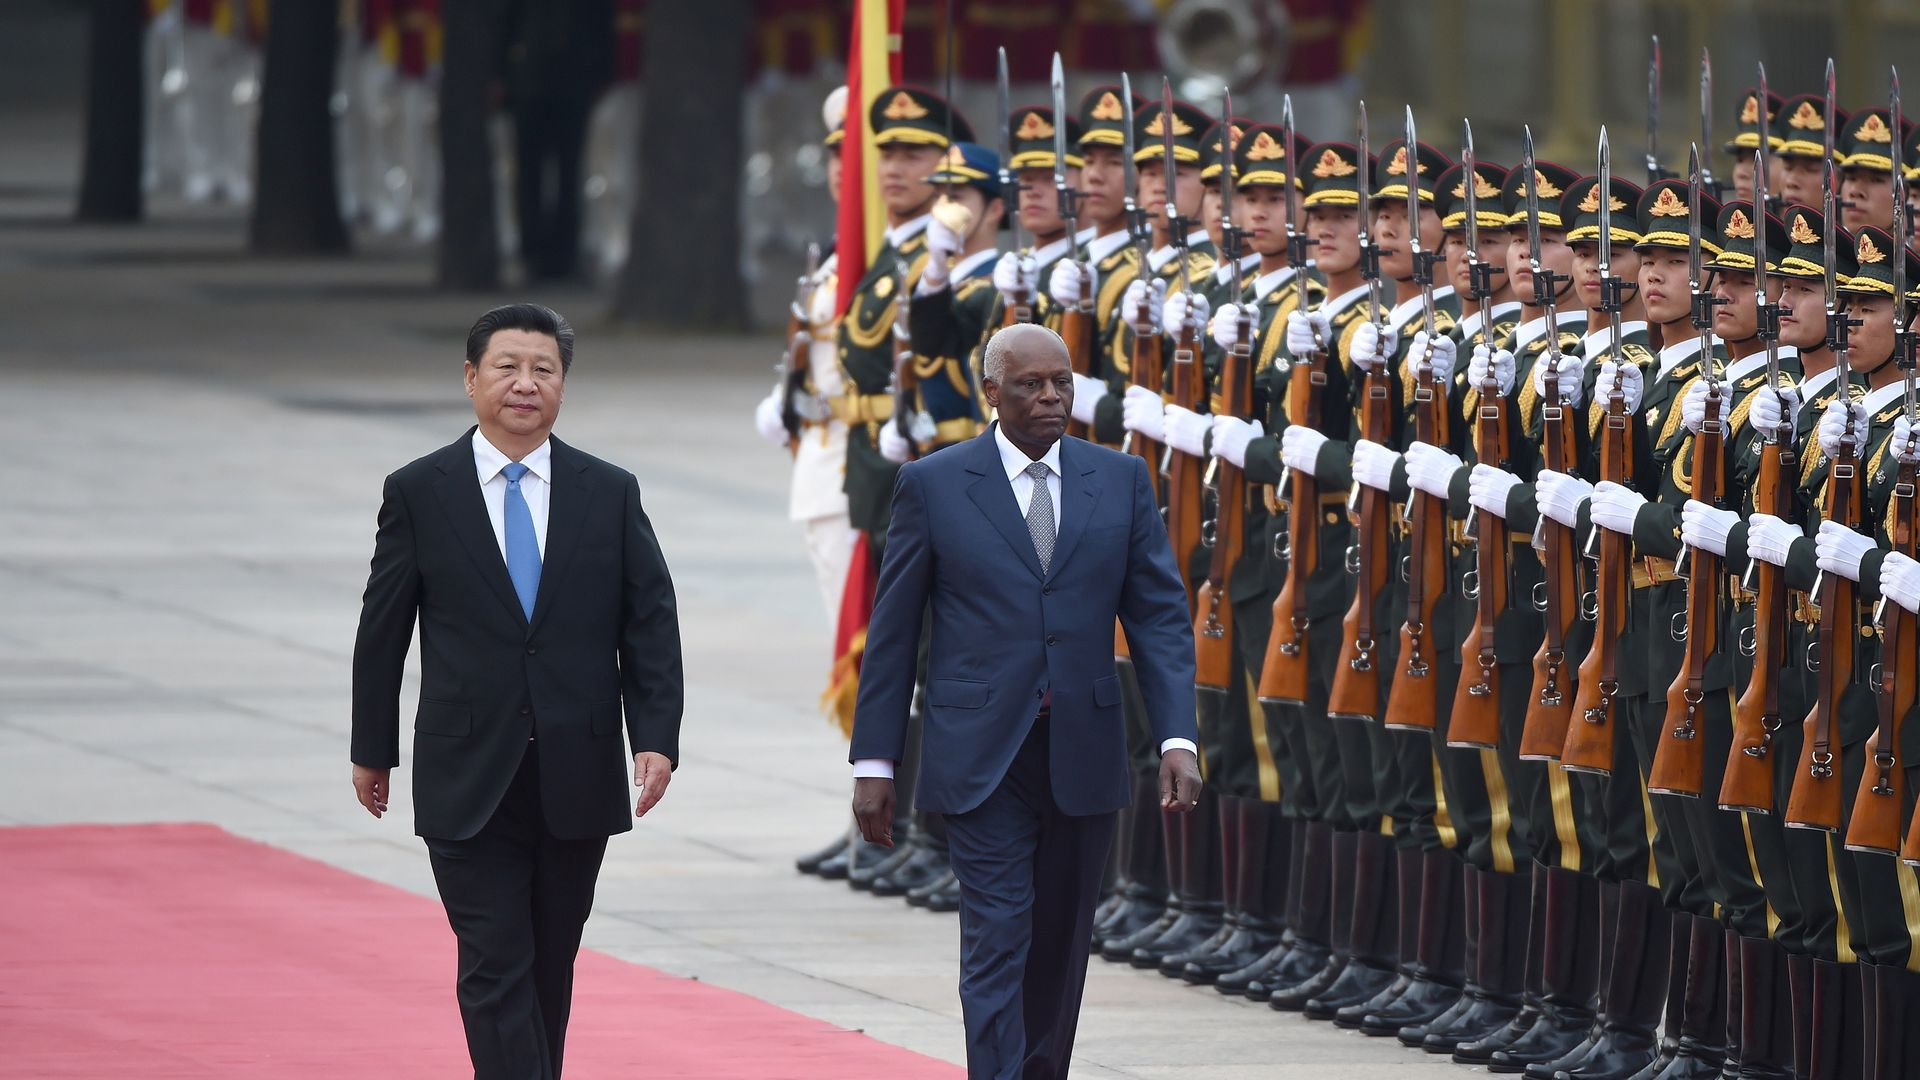 The two leaders walk by Chinese soldiers